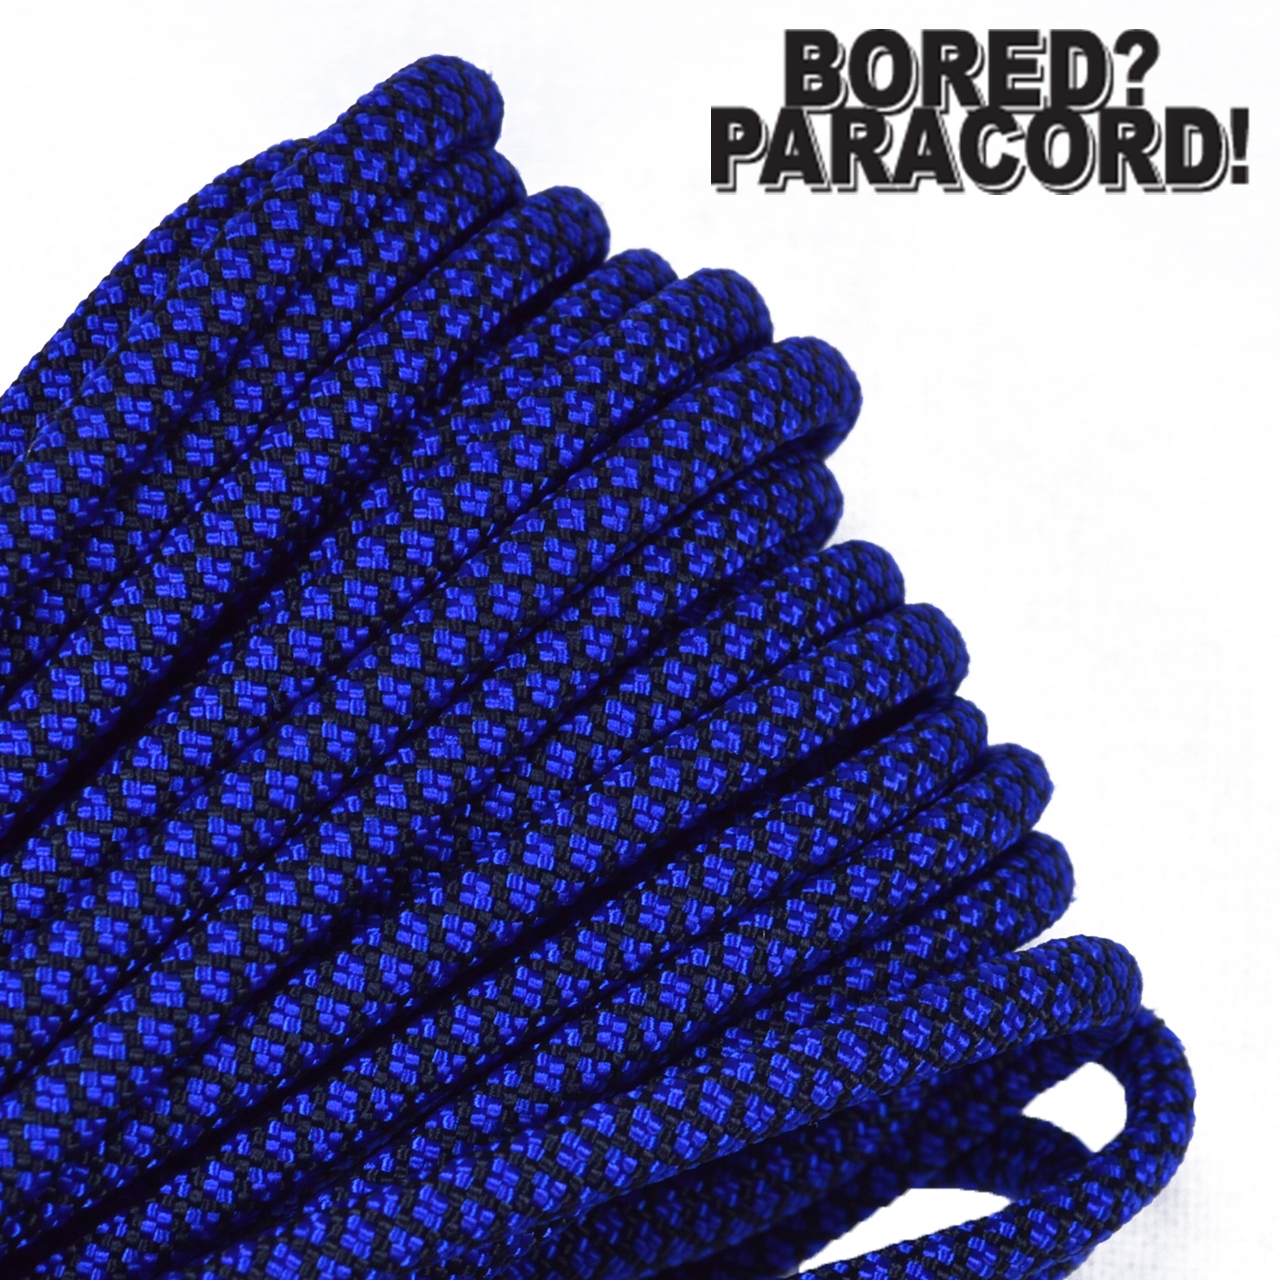 Bored Paracord Brand 550 lb Type III Paracord - Electric Blue Diamonds 100 Feet